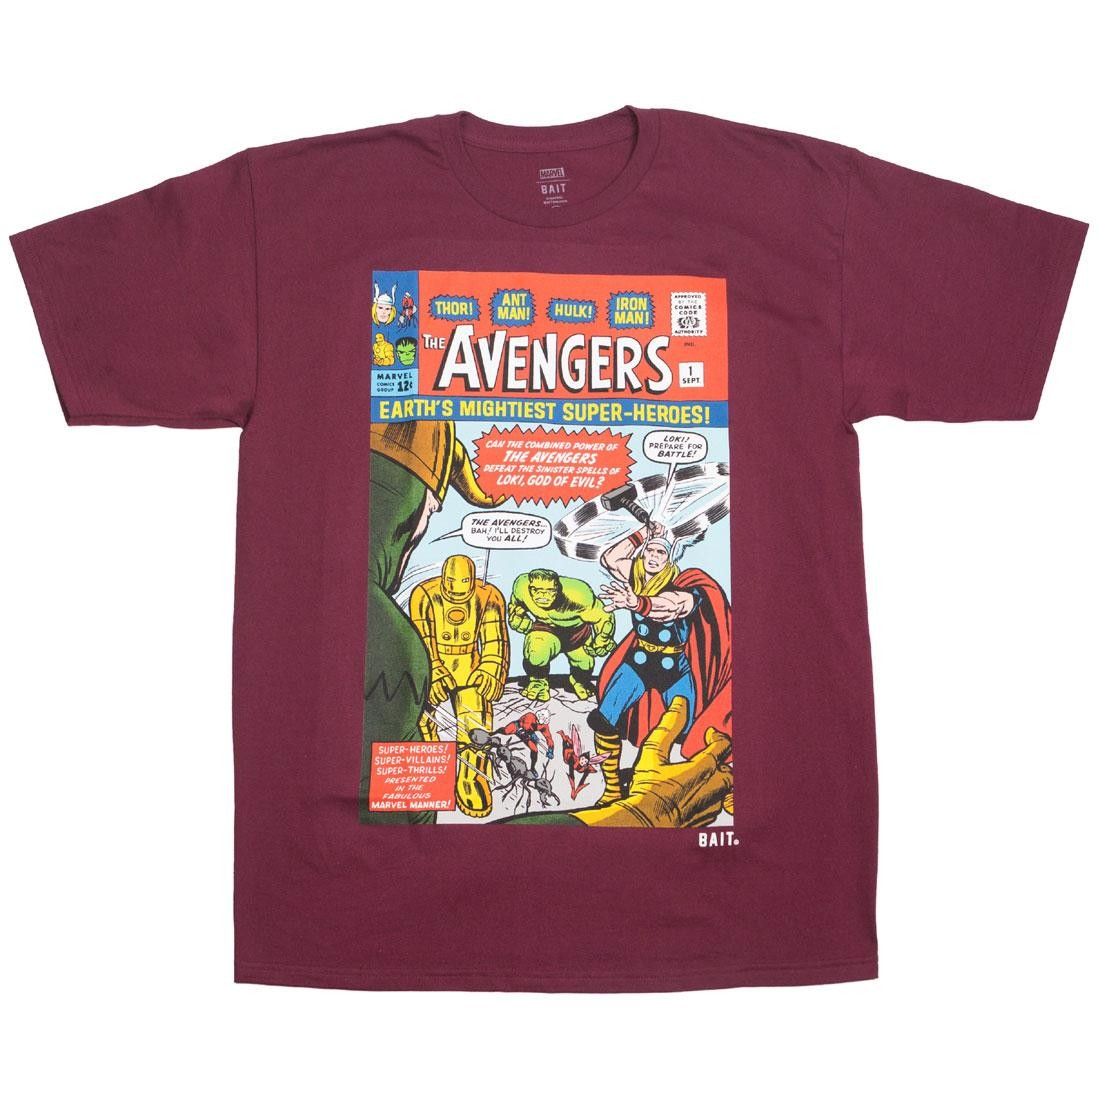 BAIT x Marvel Men Avengers - Earth's Mightiest Heroes Tee (burgundy)